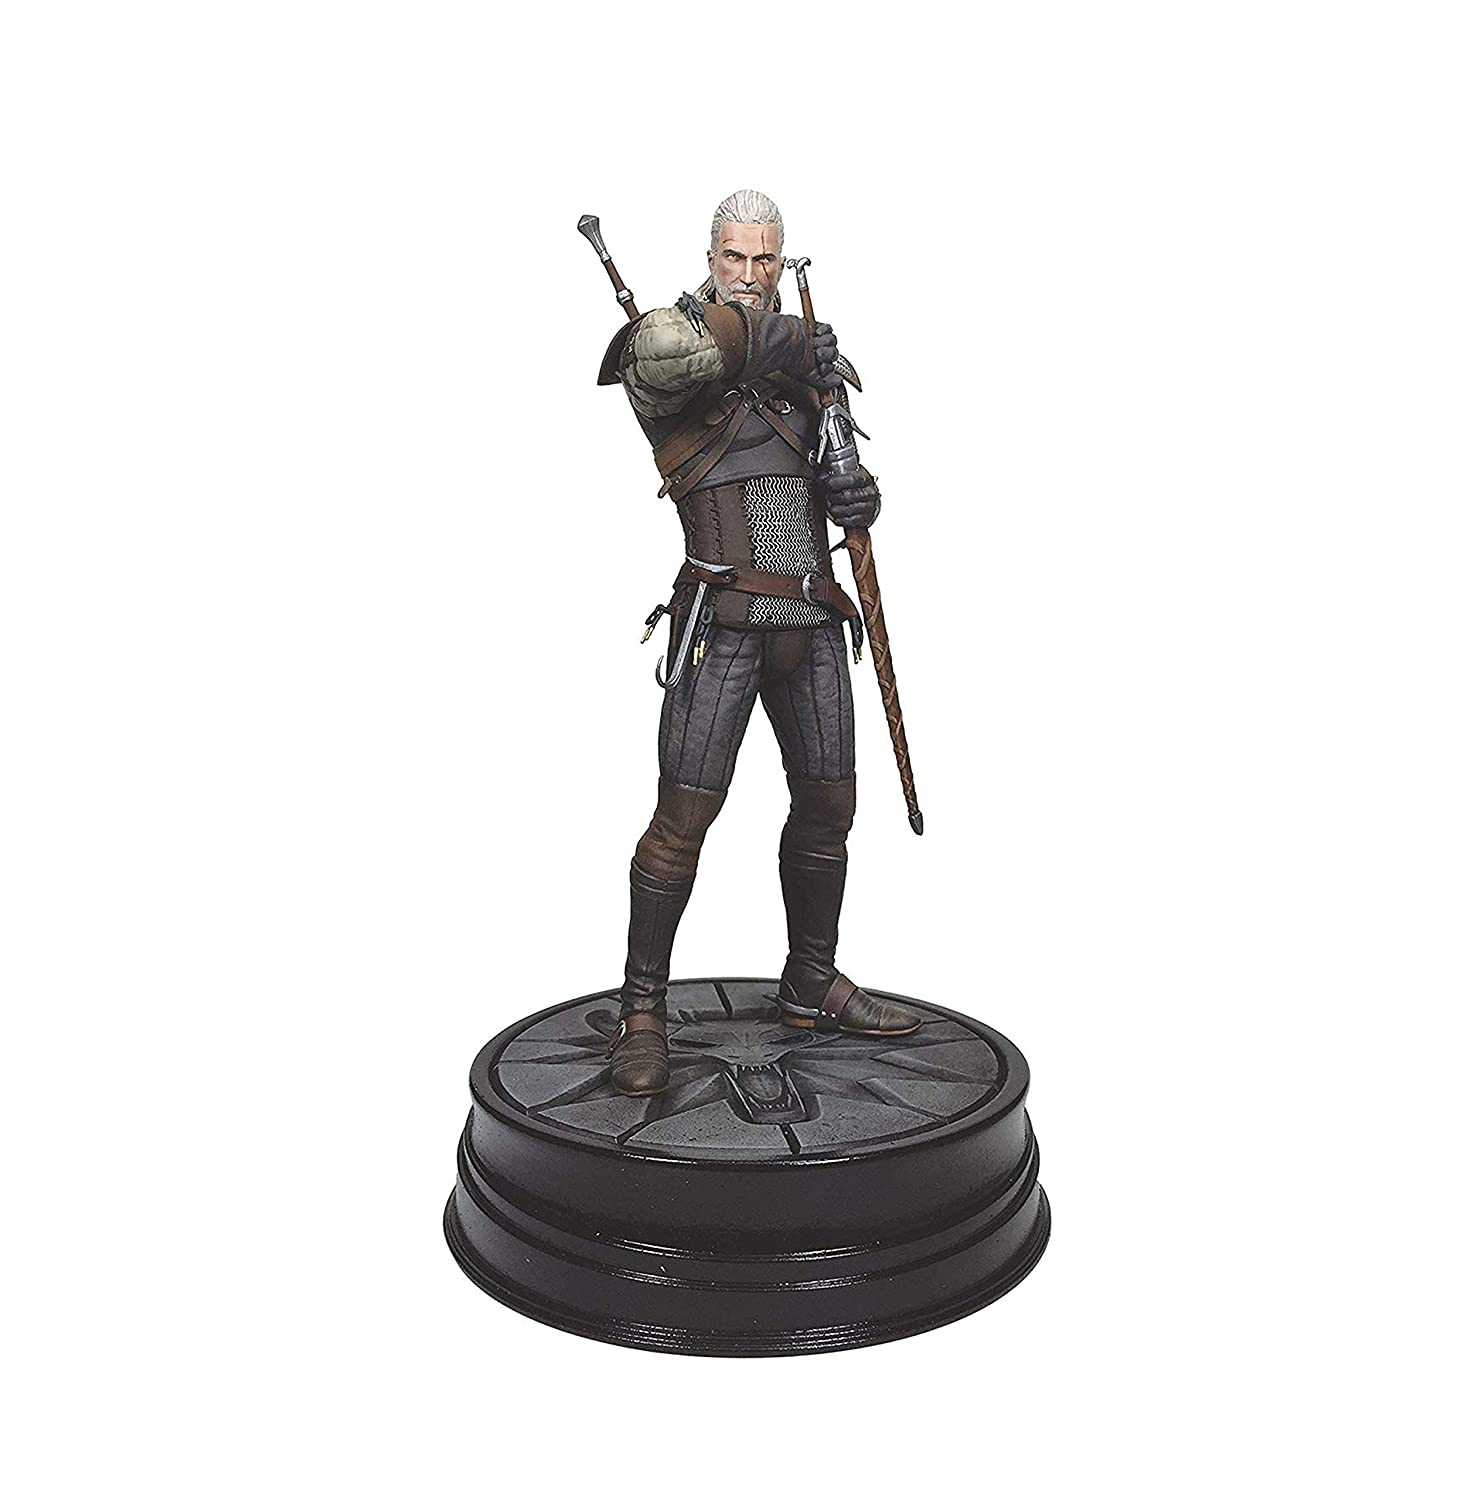 Dark Horse Deluxe The Witcher 3: Wild Hunt: Geralt Figure Toy Figures at amazon